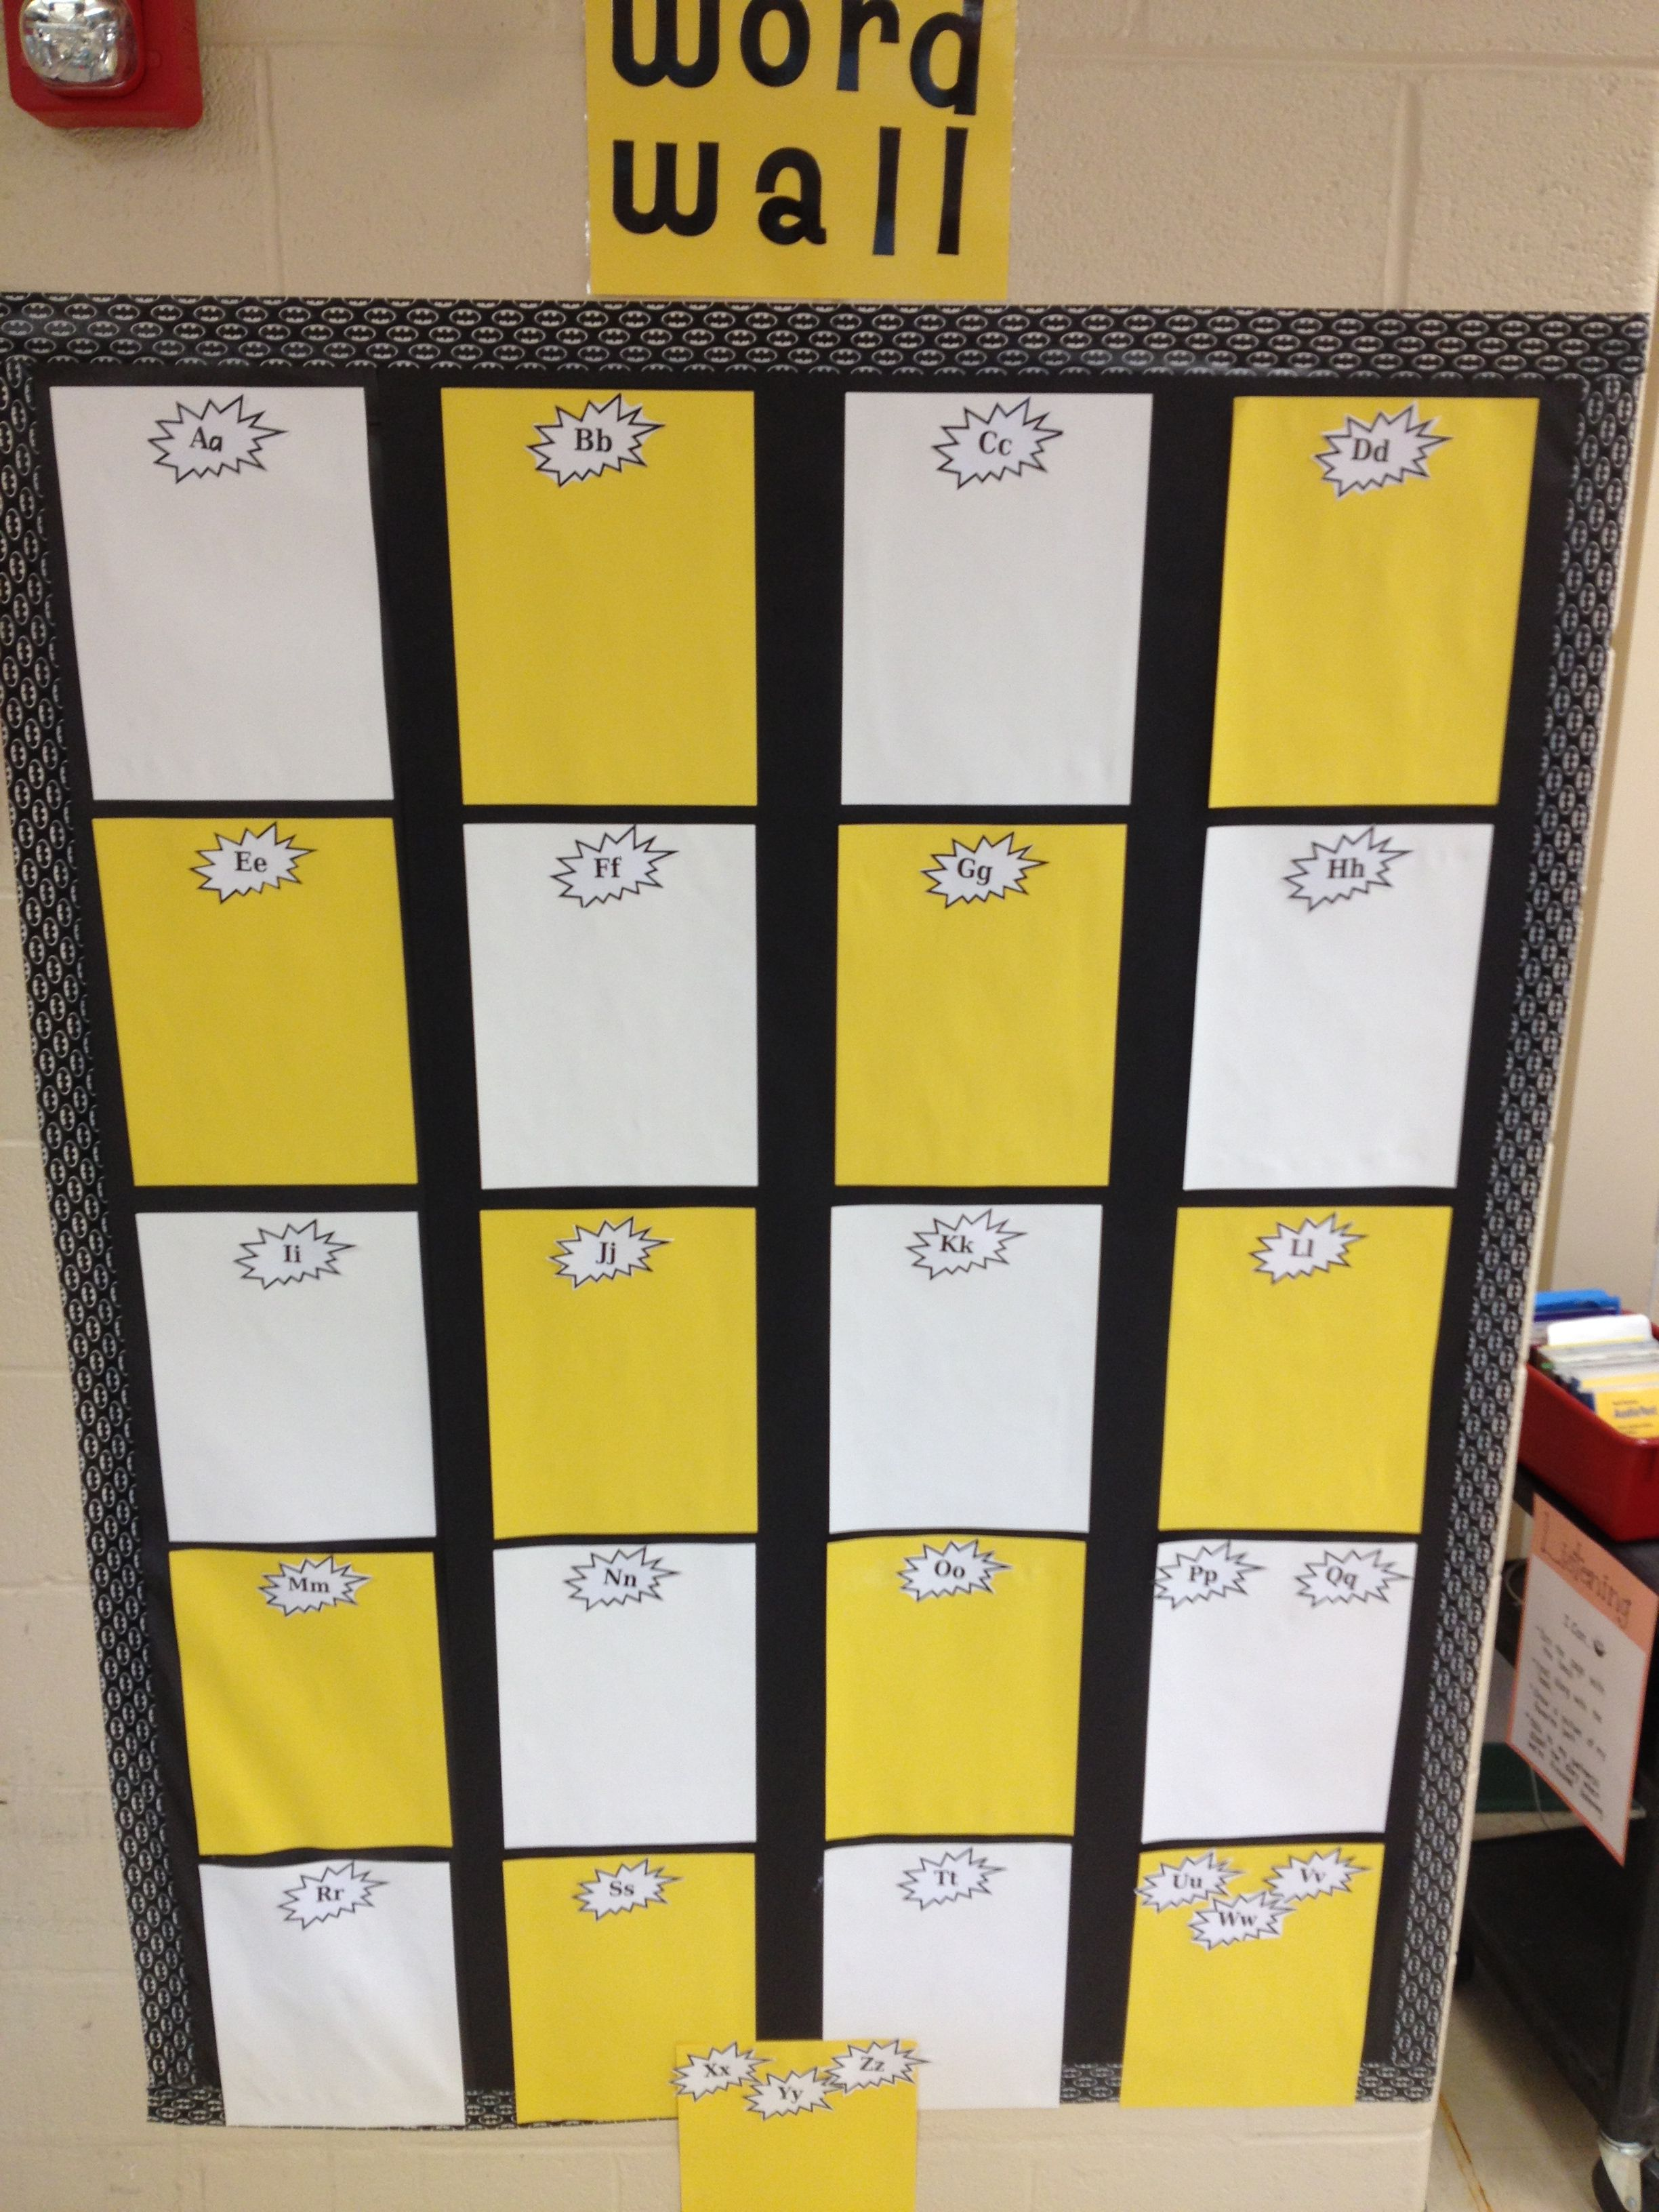 Word wall for superhero classroom with batman duct tape for border ...